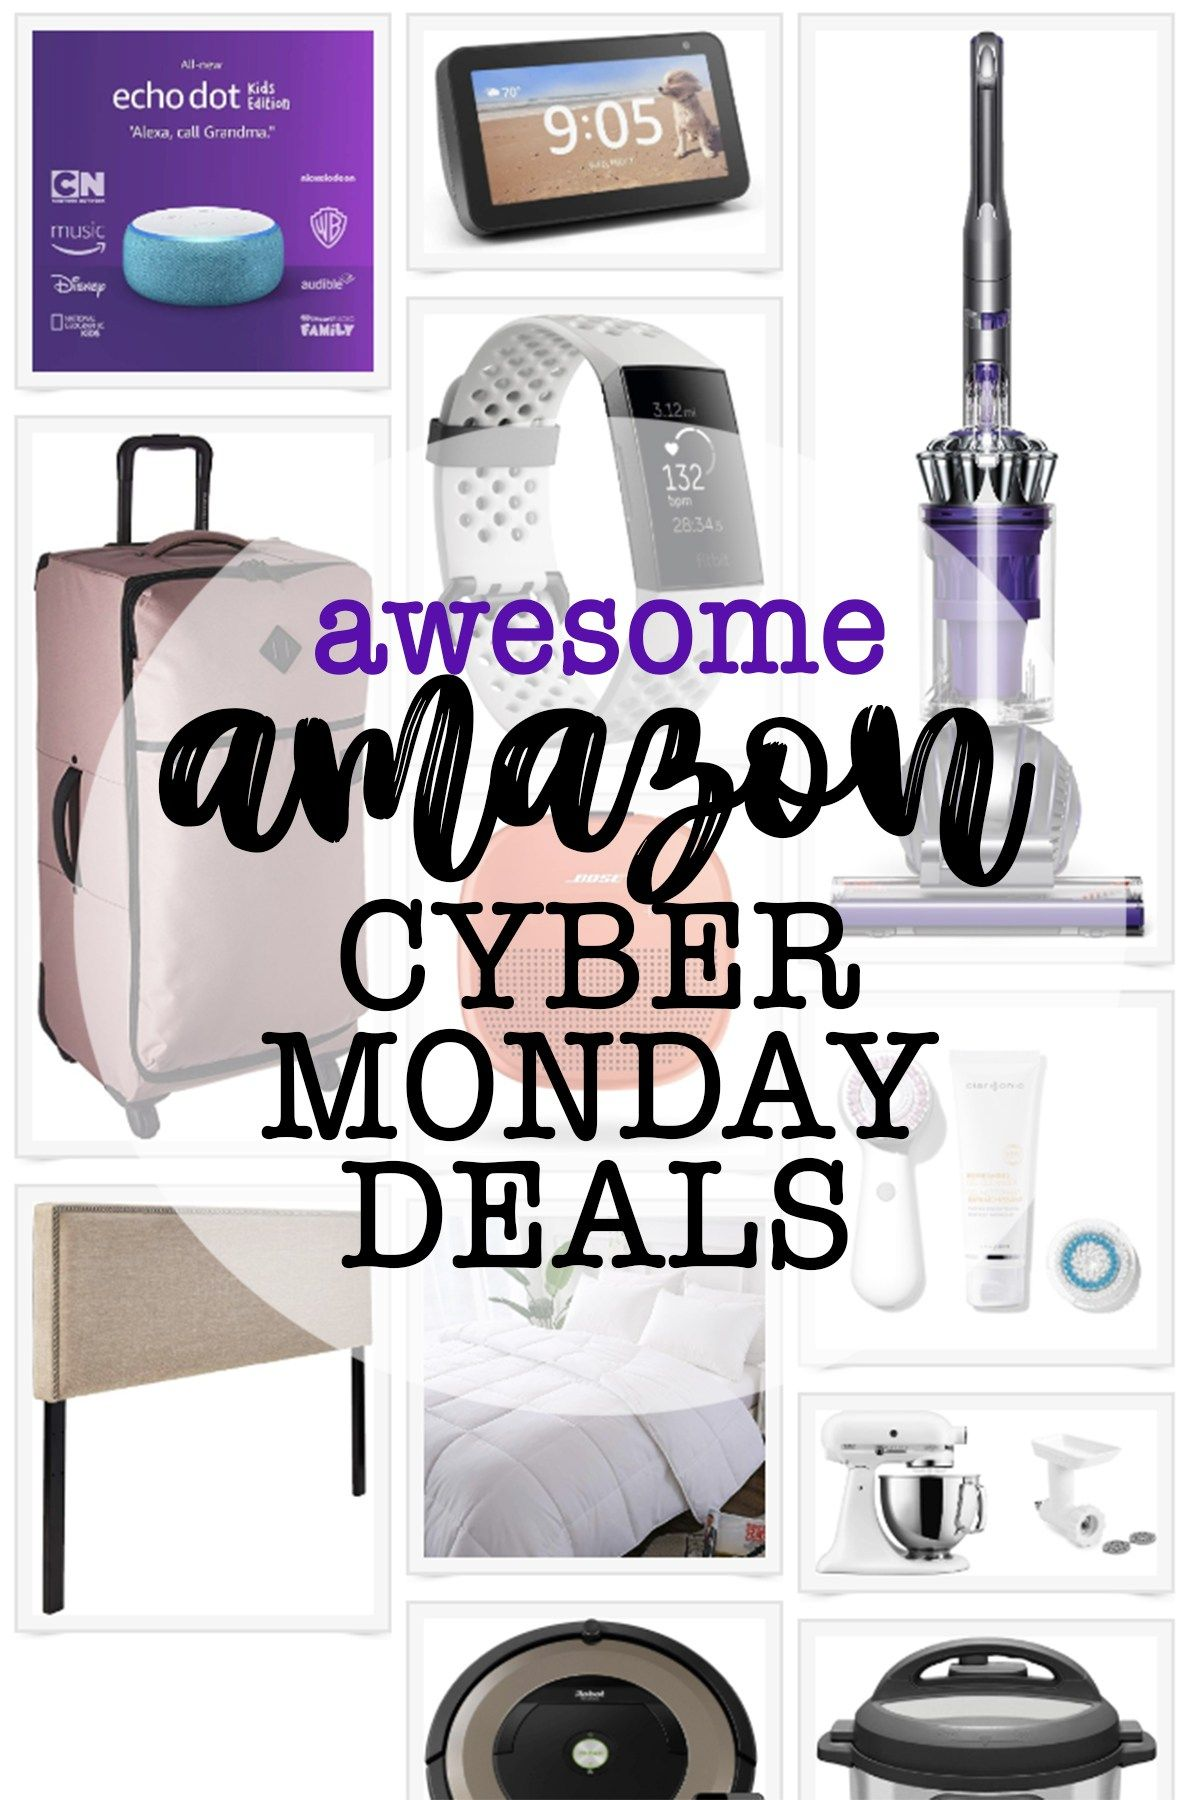 Favorite Amazon Cyber Monday Deals #shopping #cybermonday #deals #shop #christmasgifts #pinkpeppermintdesign